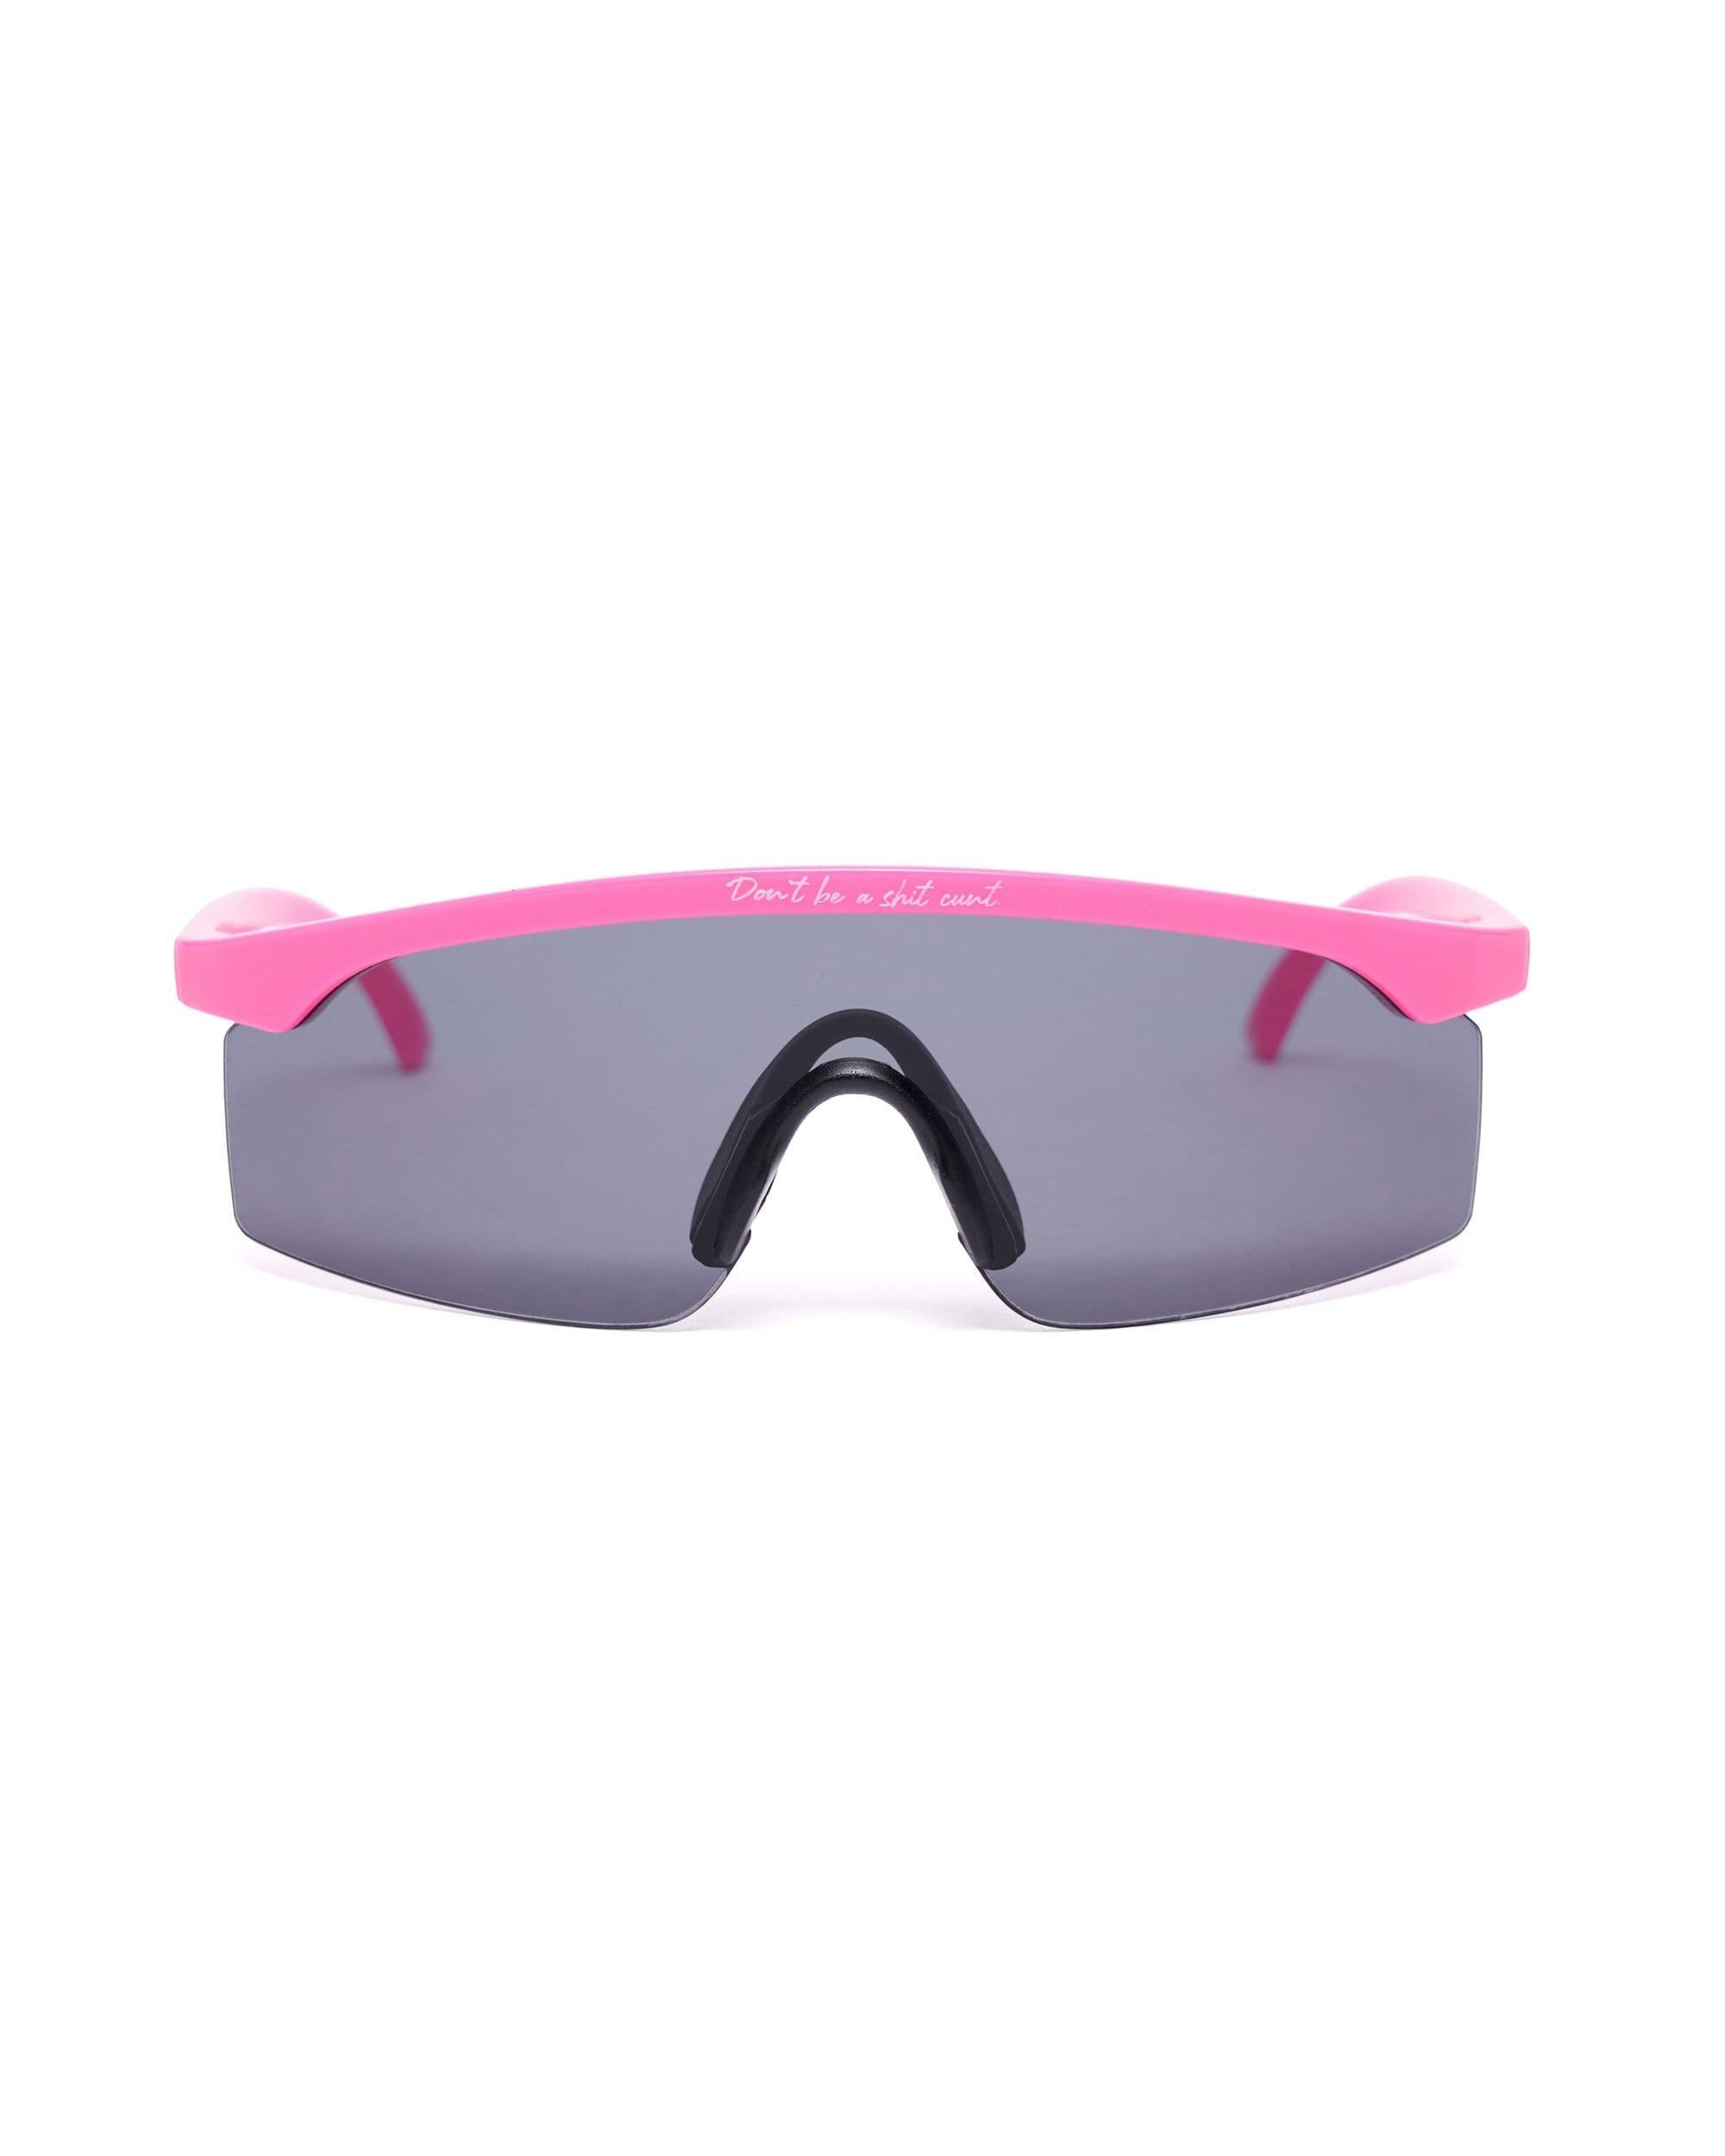 Troy Candy Sunnies